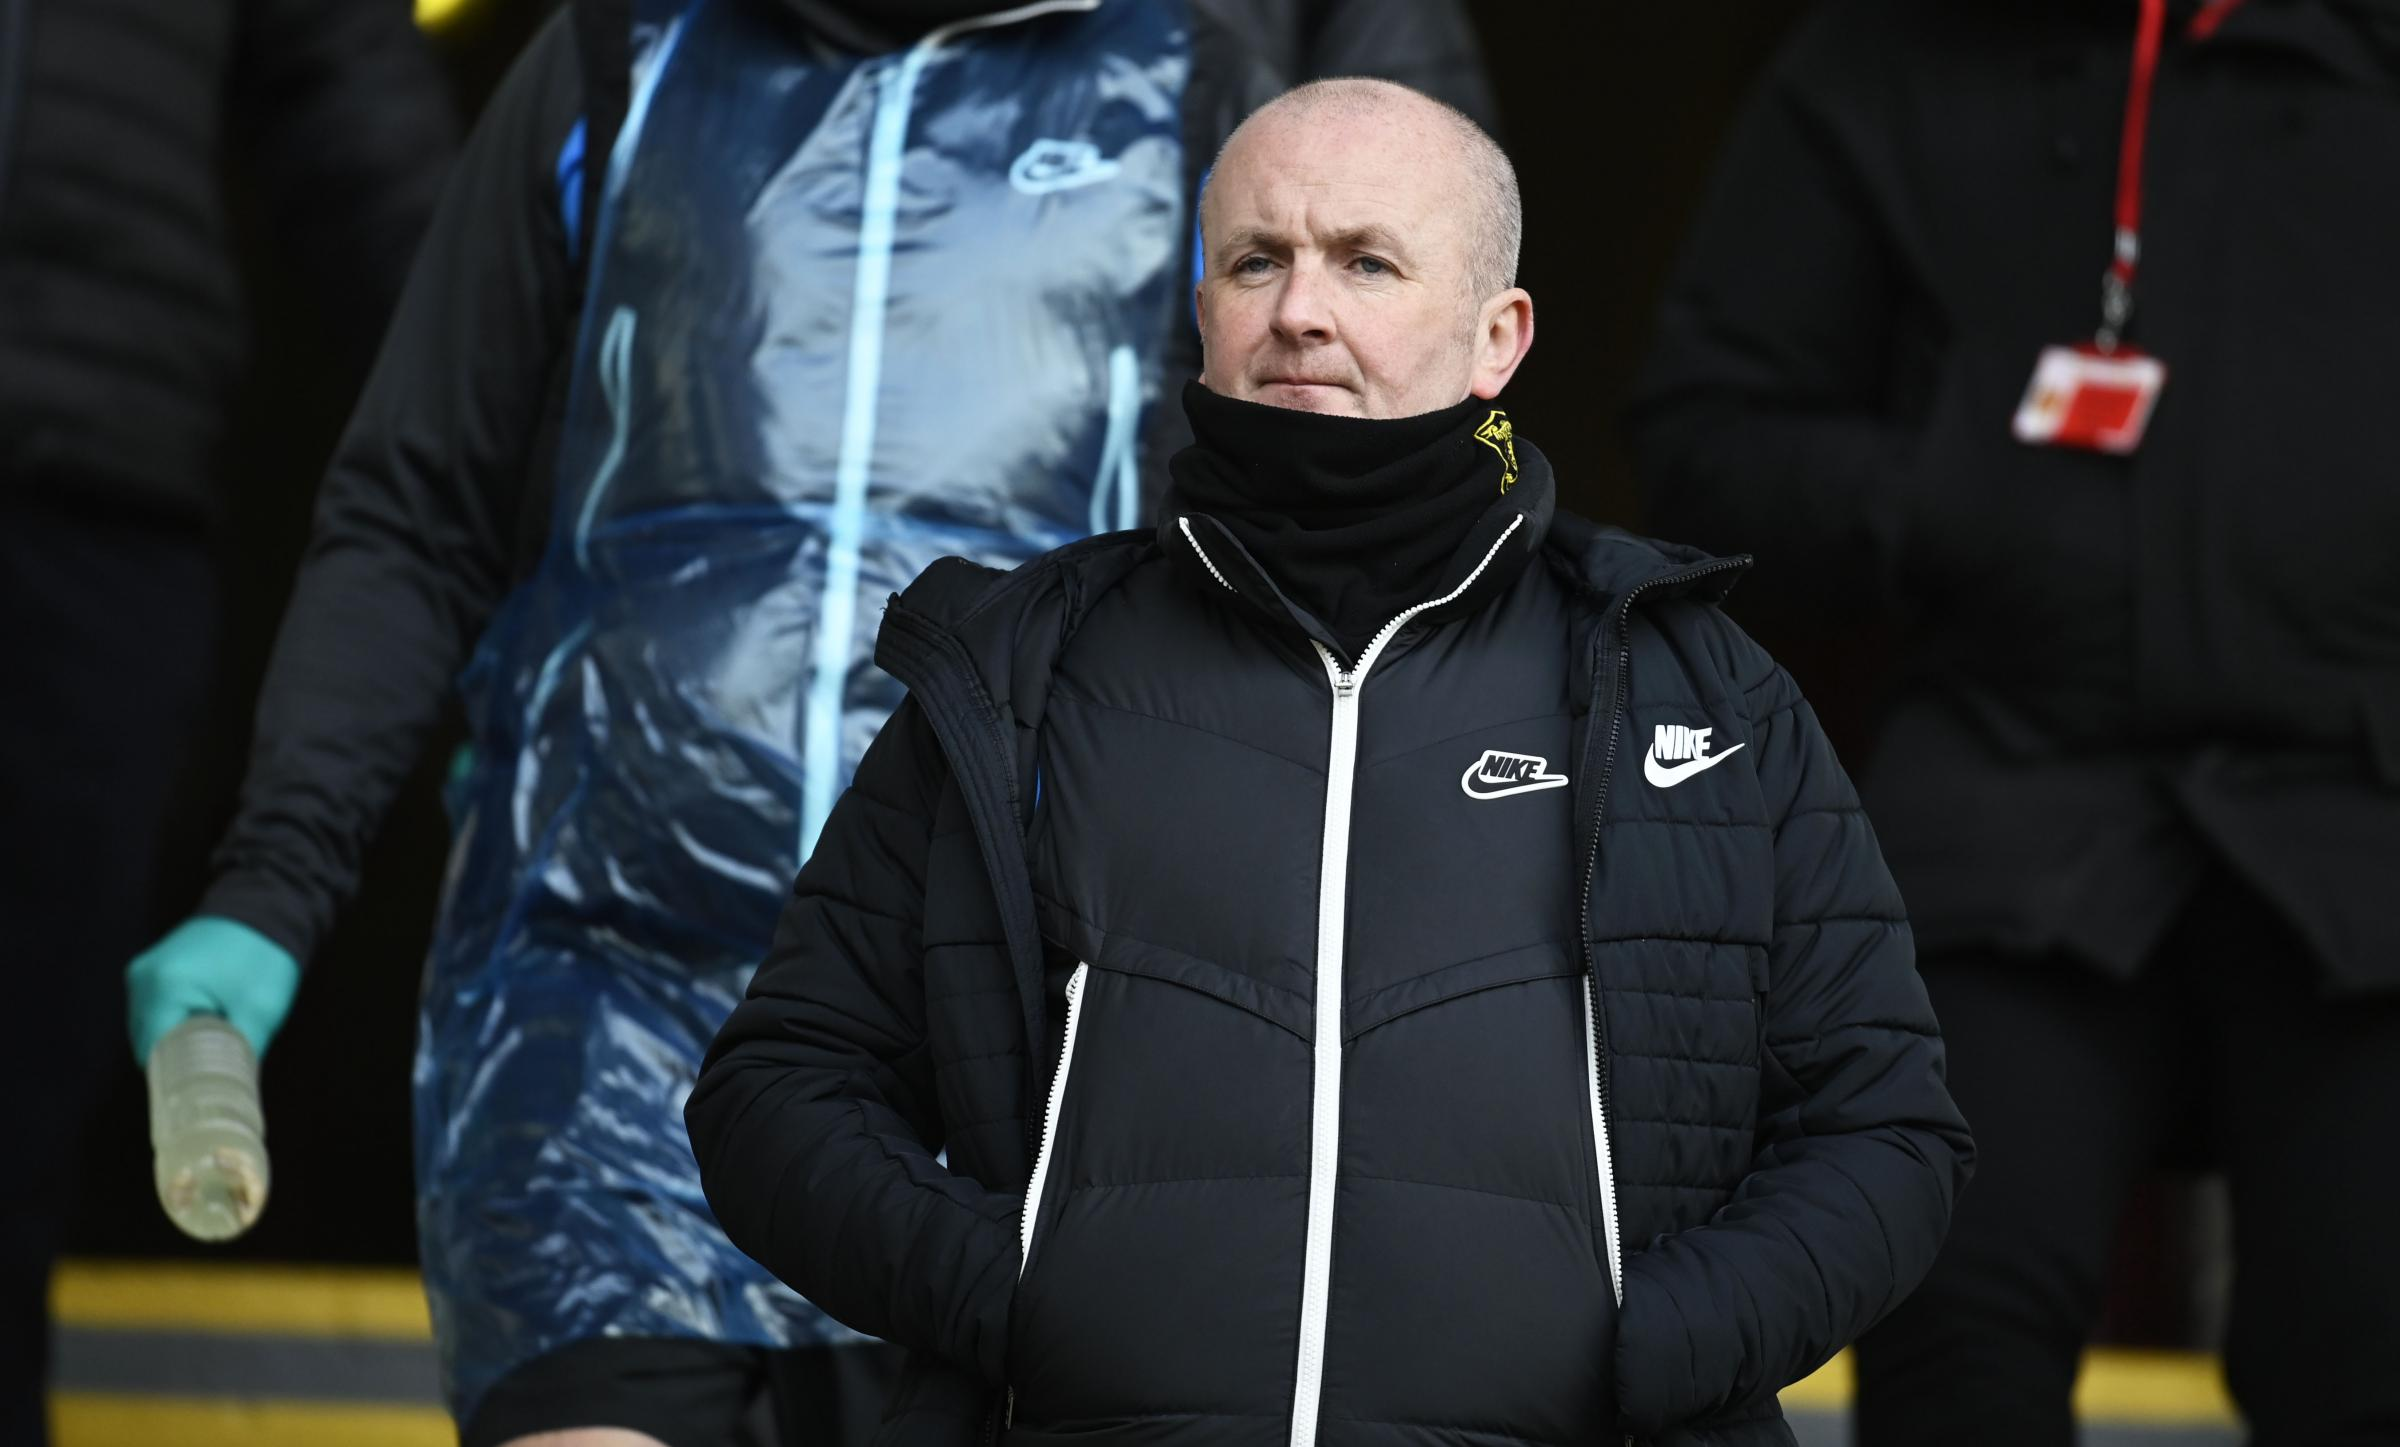 Livingston 2021/22 preview: Summer of change for Martindale won't phase manager or players